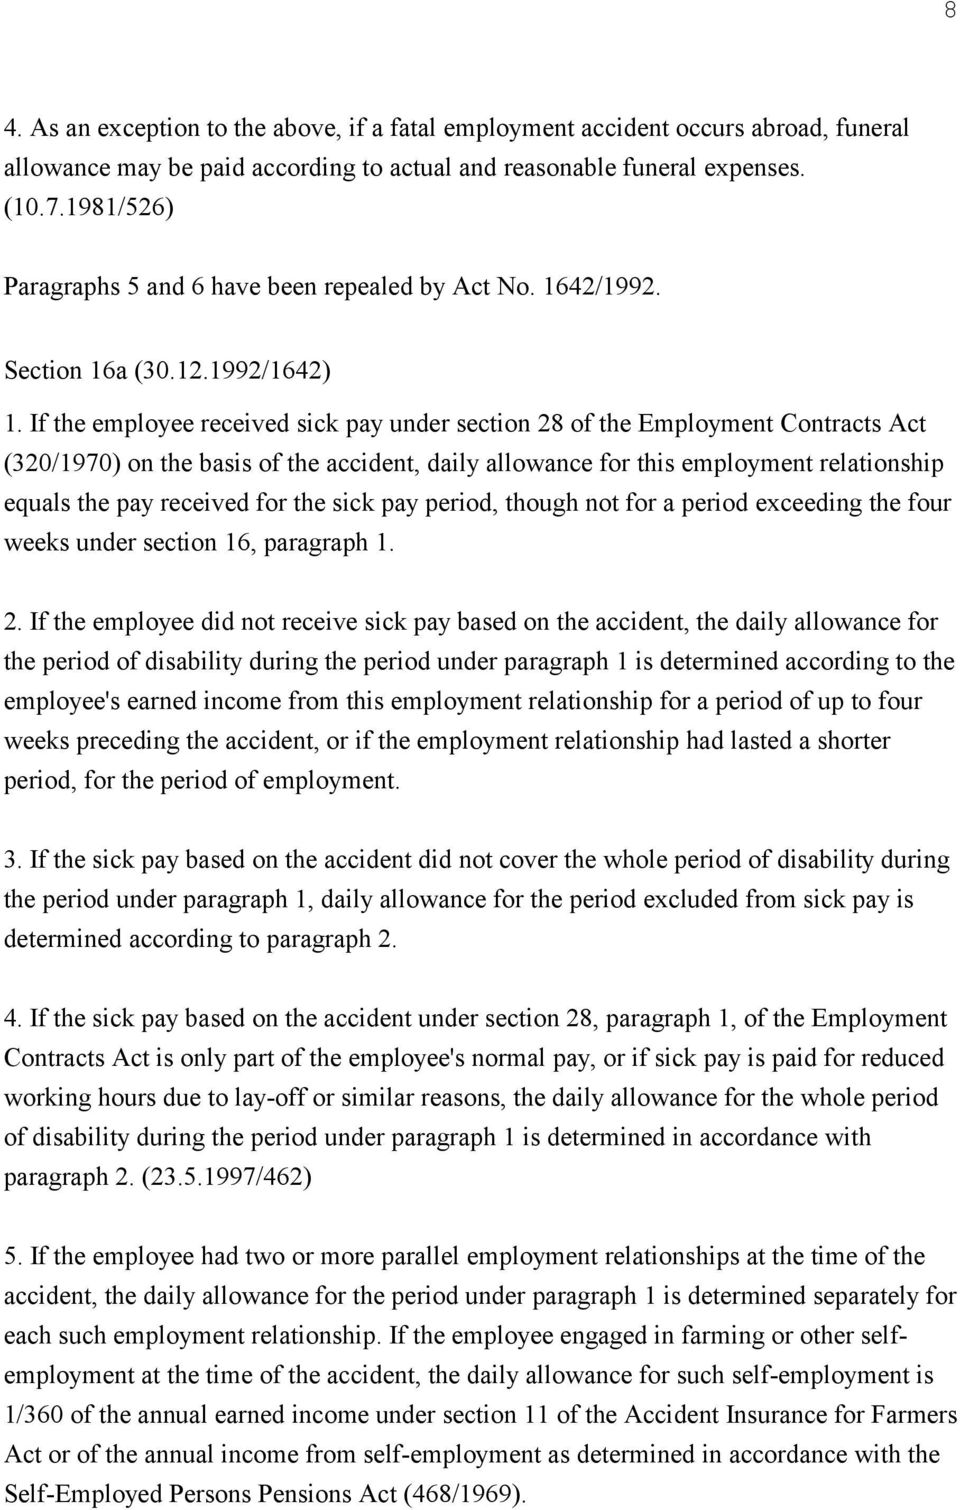 If the employee received sick pay under section 28 of the Employment Contracts Act (320/1970) on the basis of the accident, daily allowance for this employment relationship equals the pay received